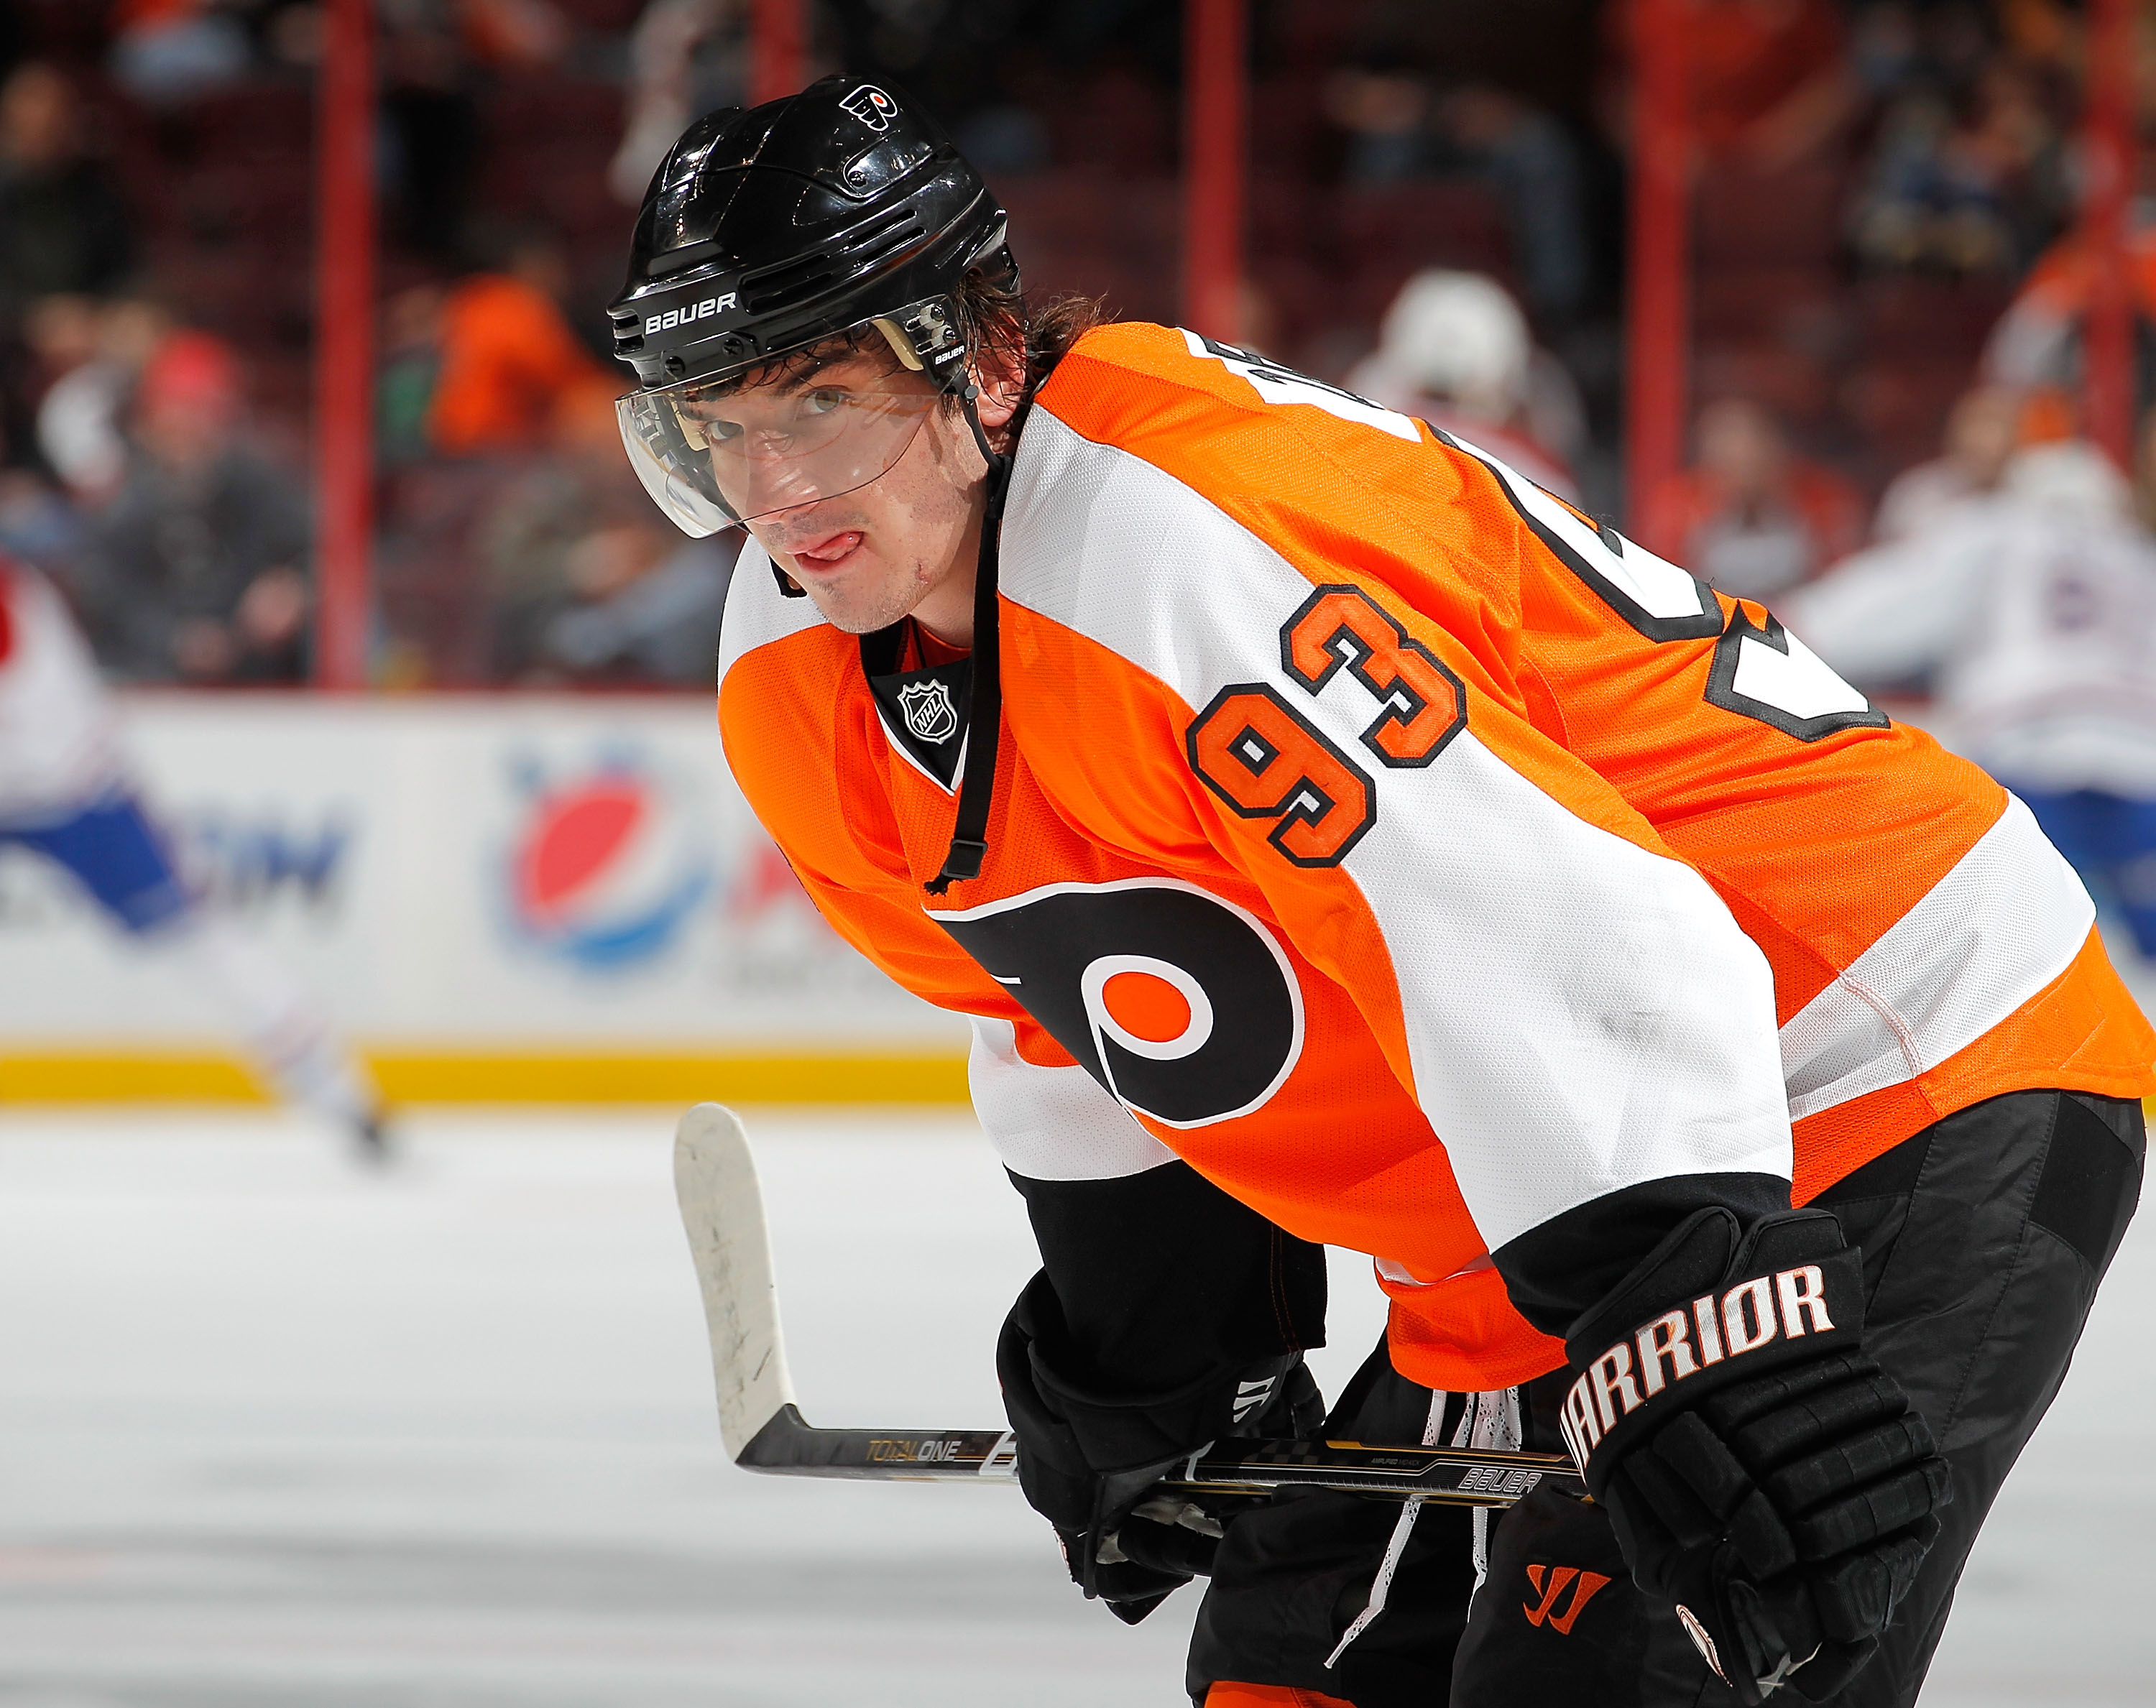 PHILADELPHIA, PA - JANUARY 25:  Nikolay Zherdev #93 of the Philadelphia Flyers waits during warmups before an NHL hockey game against the Montreal Canadiens at the Wells Fargo Center on January 25, 2011 in Philadelphia, Pennsylvania.  (Photo by Paul Beres